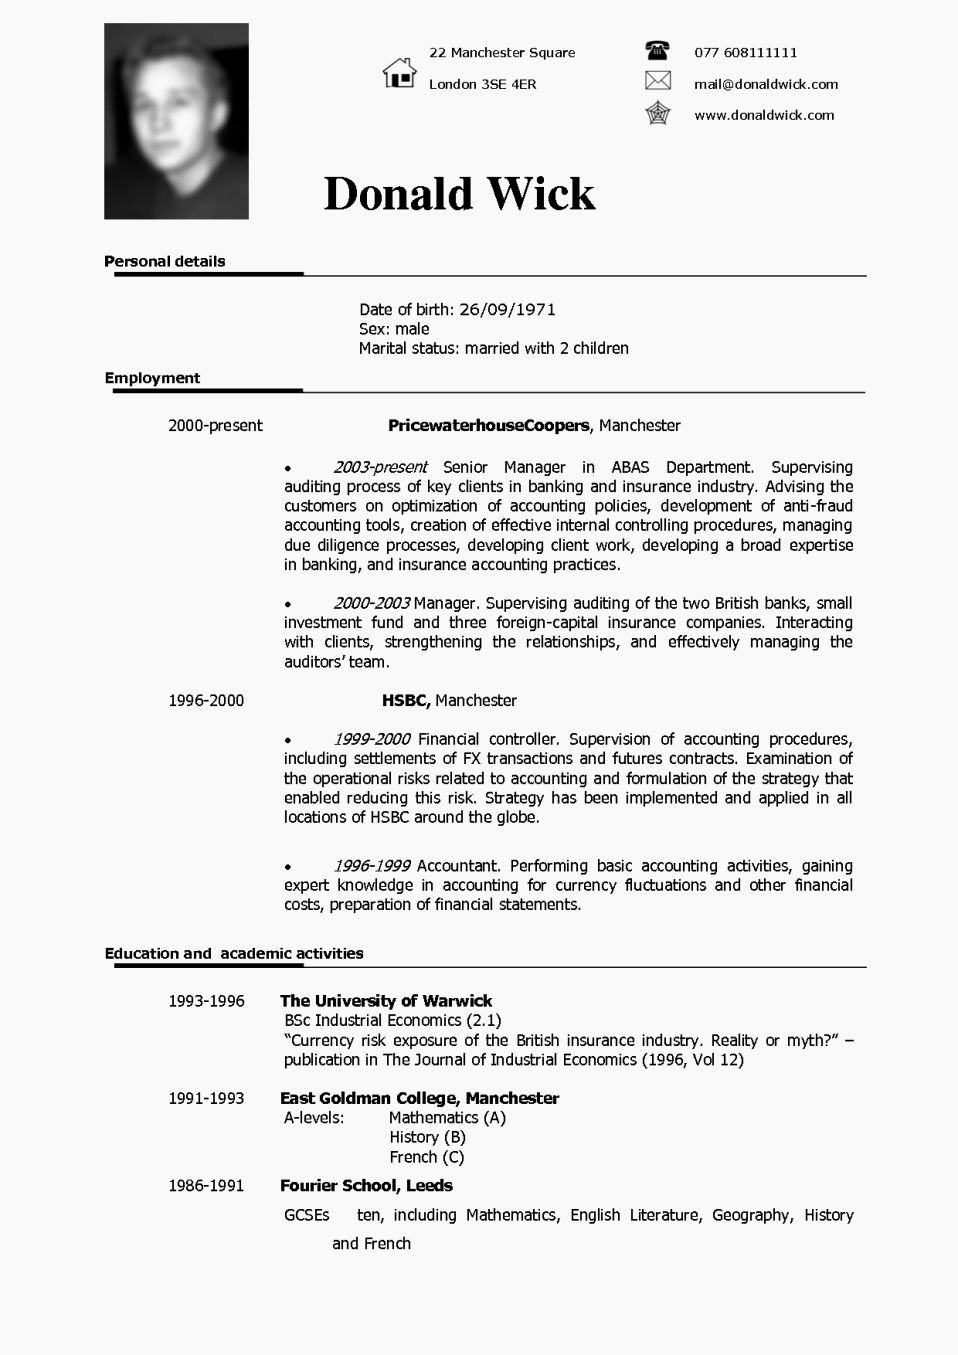 Resume and Cover Letter Template Luxury Cv Cover Letter Example Uk Resume Template